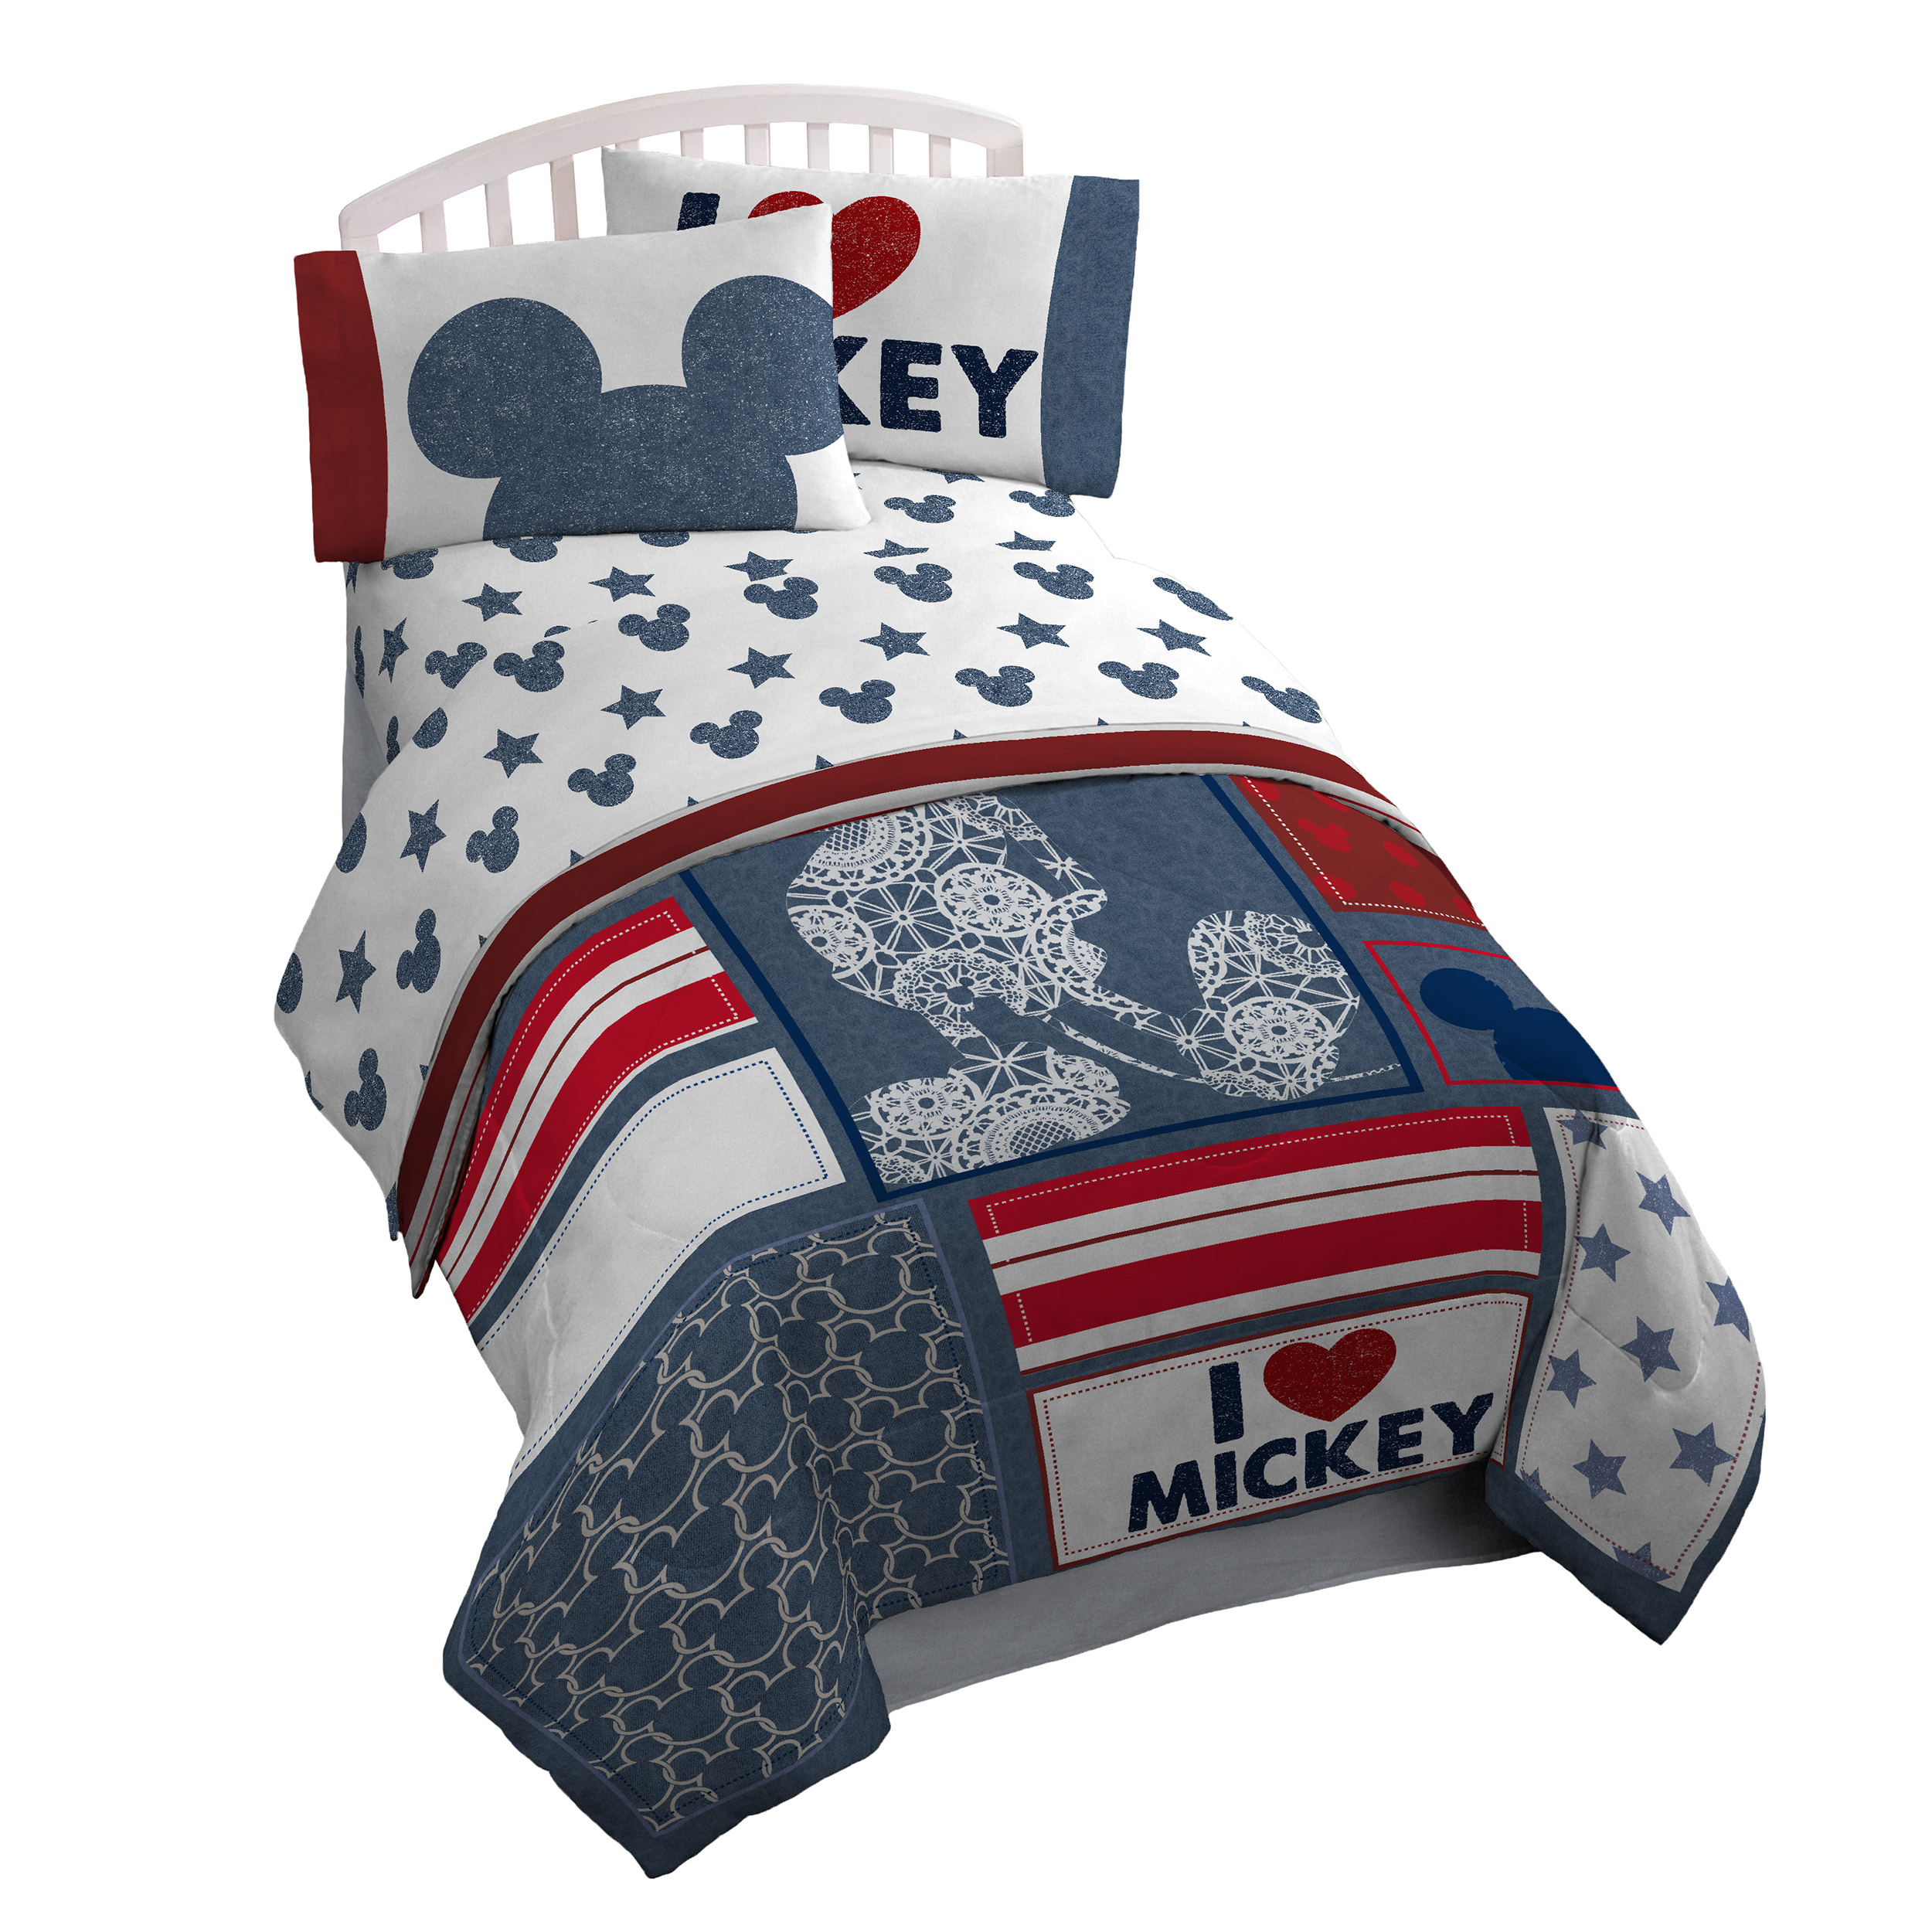 Disney Mickey Mouse: Red, White & Blue Full Comforter & Sheet Set (7 Piece Bed in A Bag)